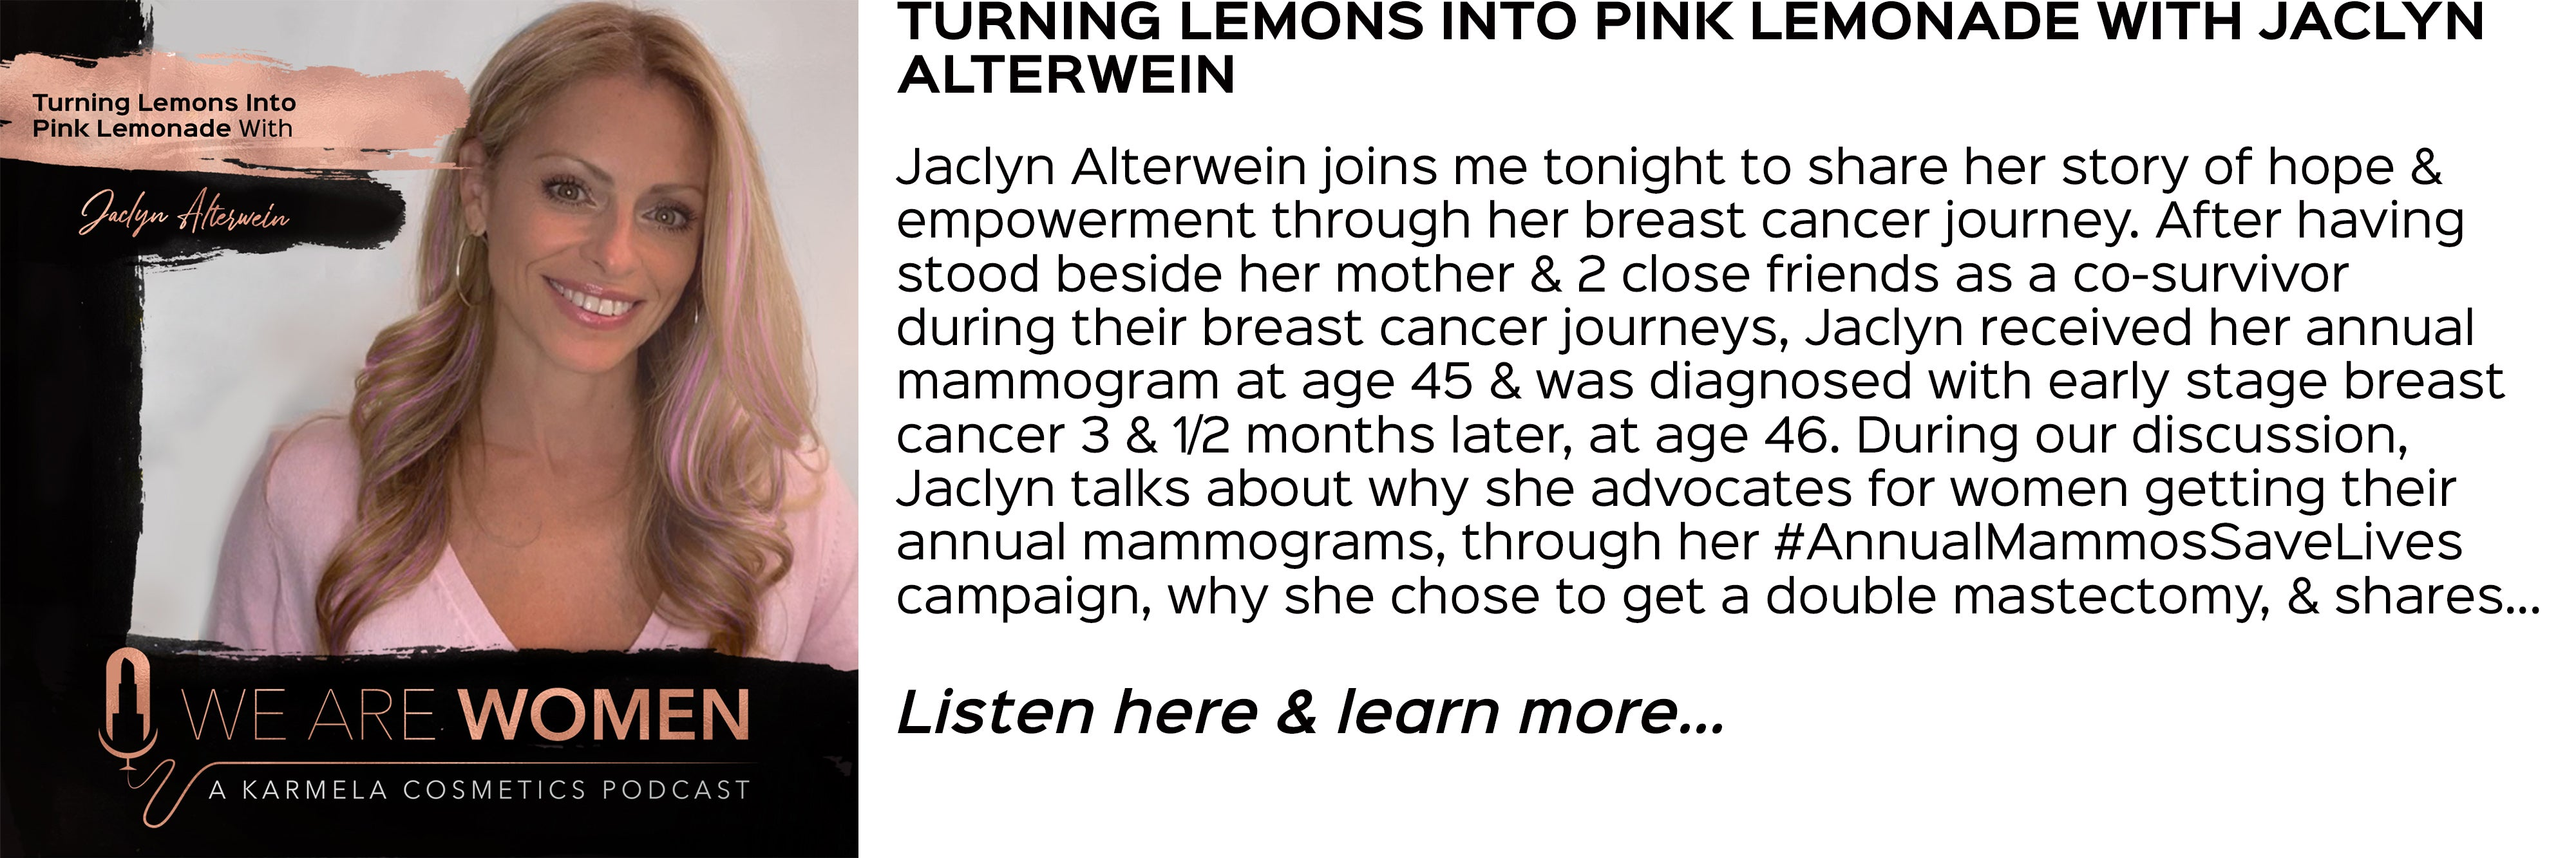 Jaclyn alterwein, breast cancer awareness